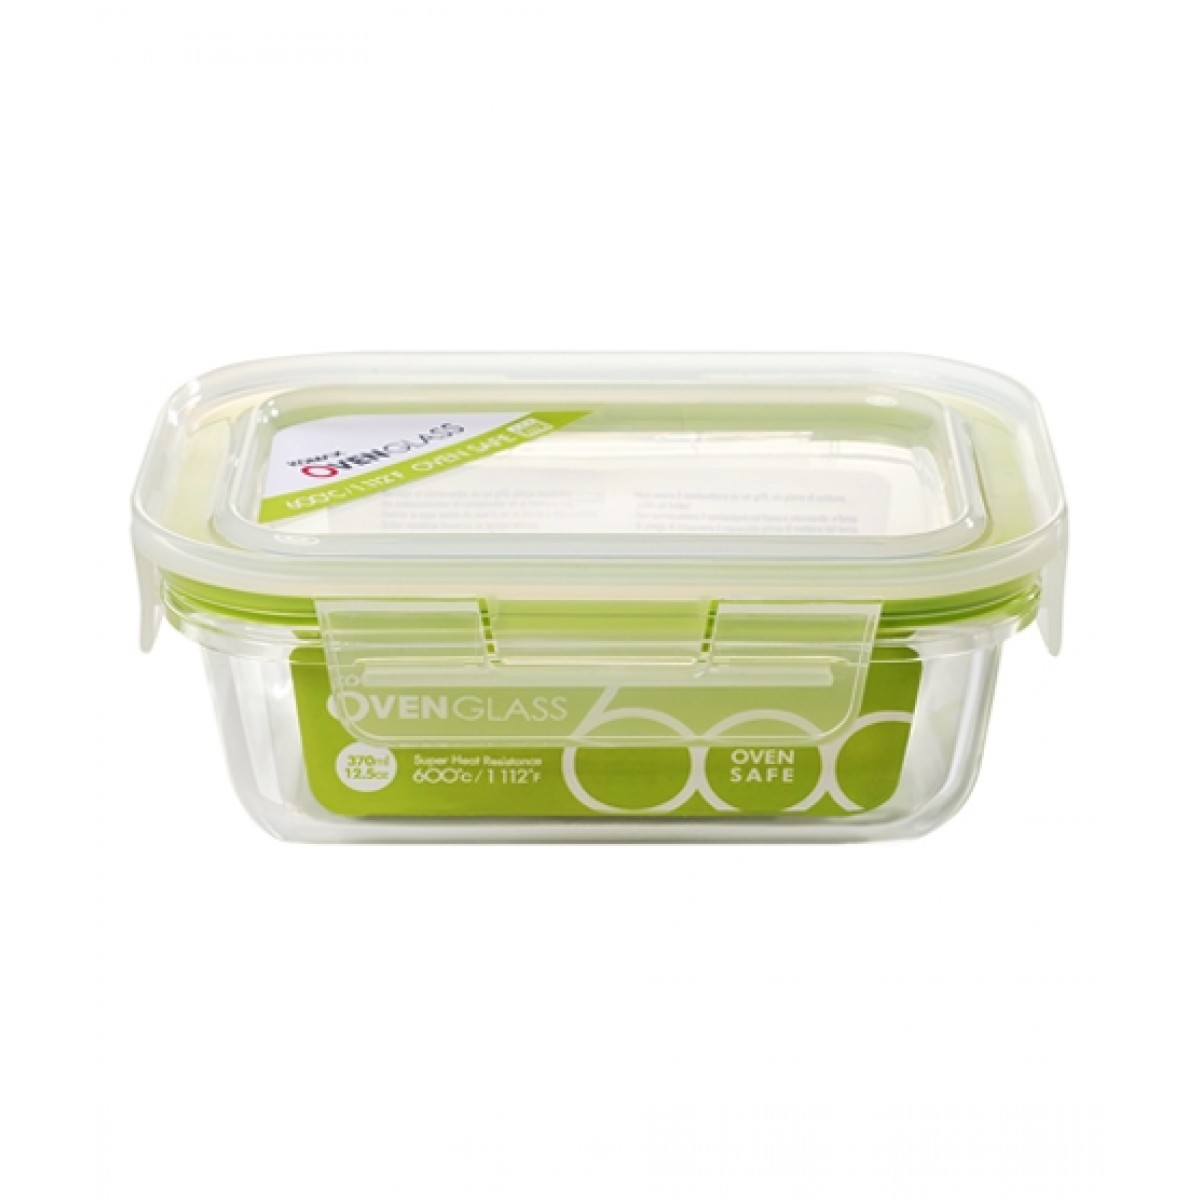 Komax Oven Glass R1 Food Container 370ml (58615)